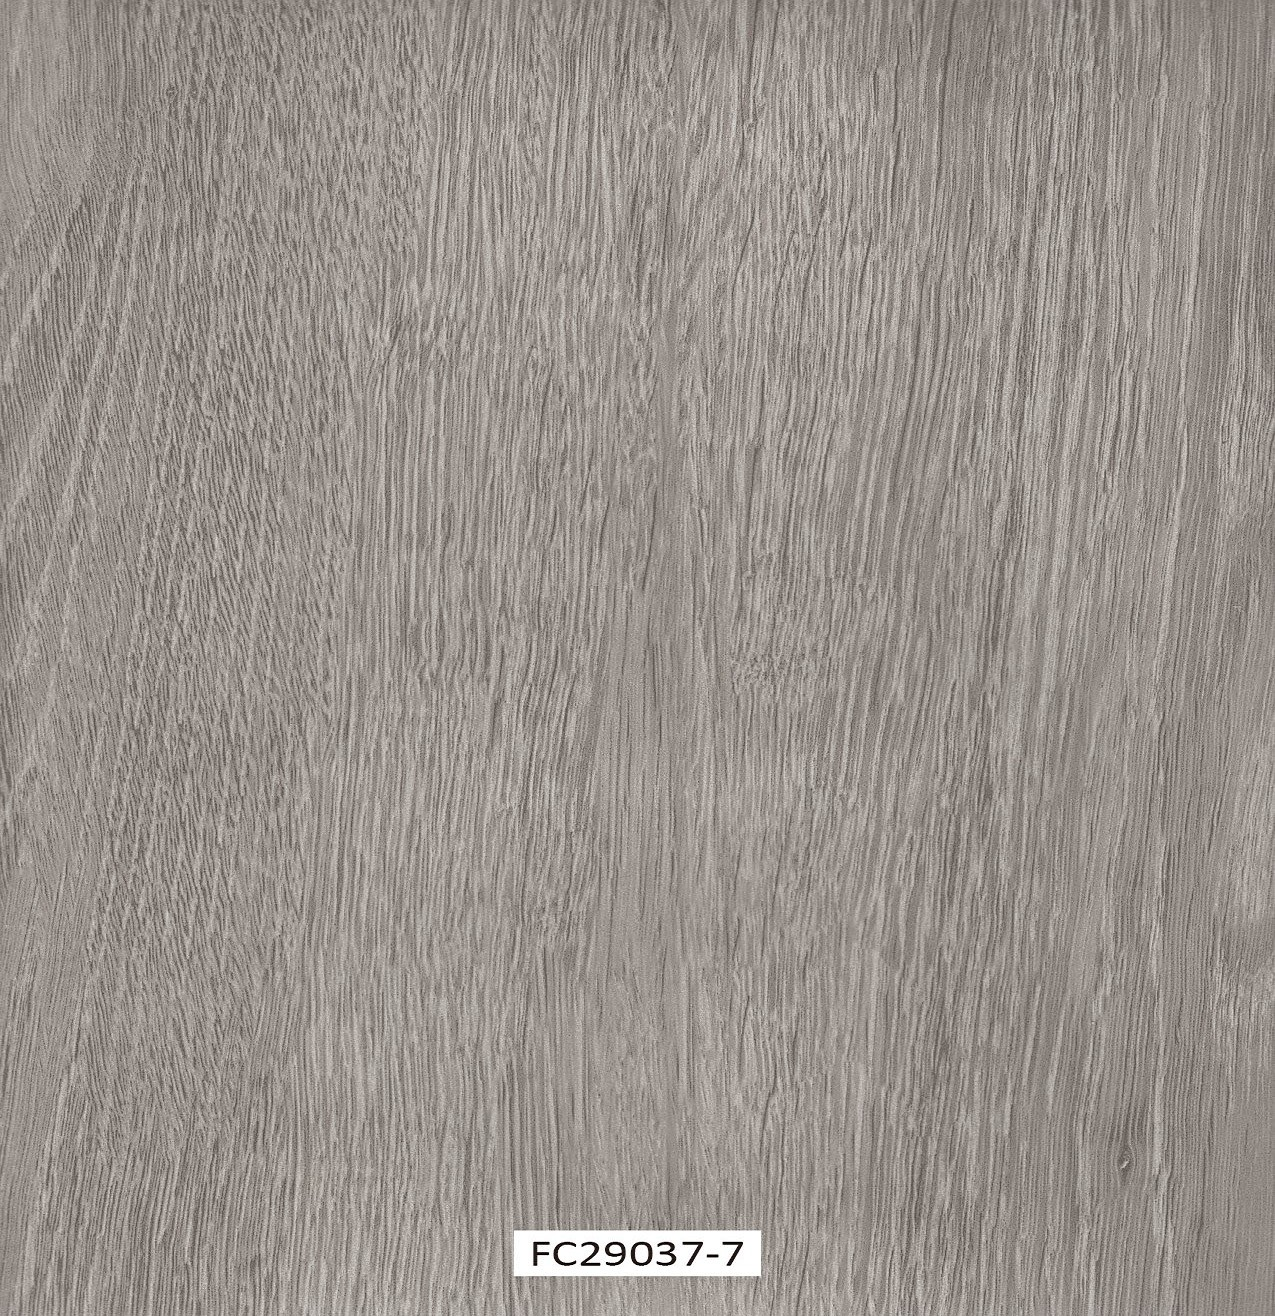 Anti Corrosion Dry Back Vinyl Flooring With Wood Texture